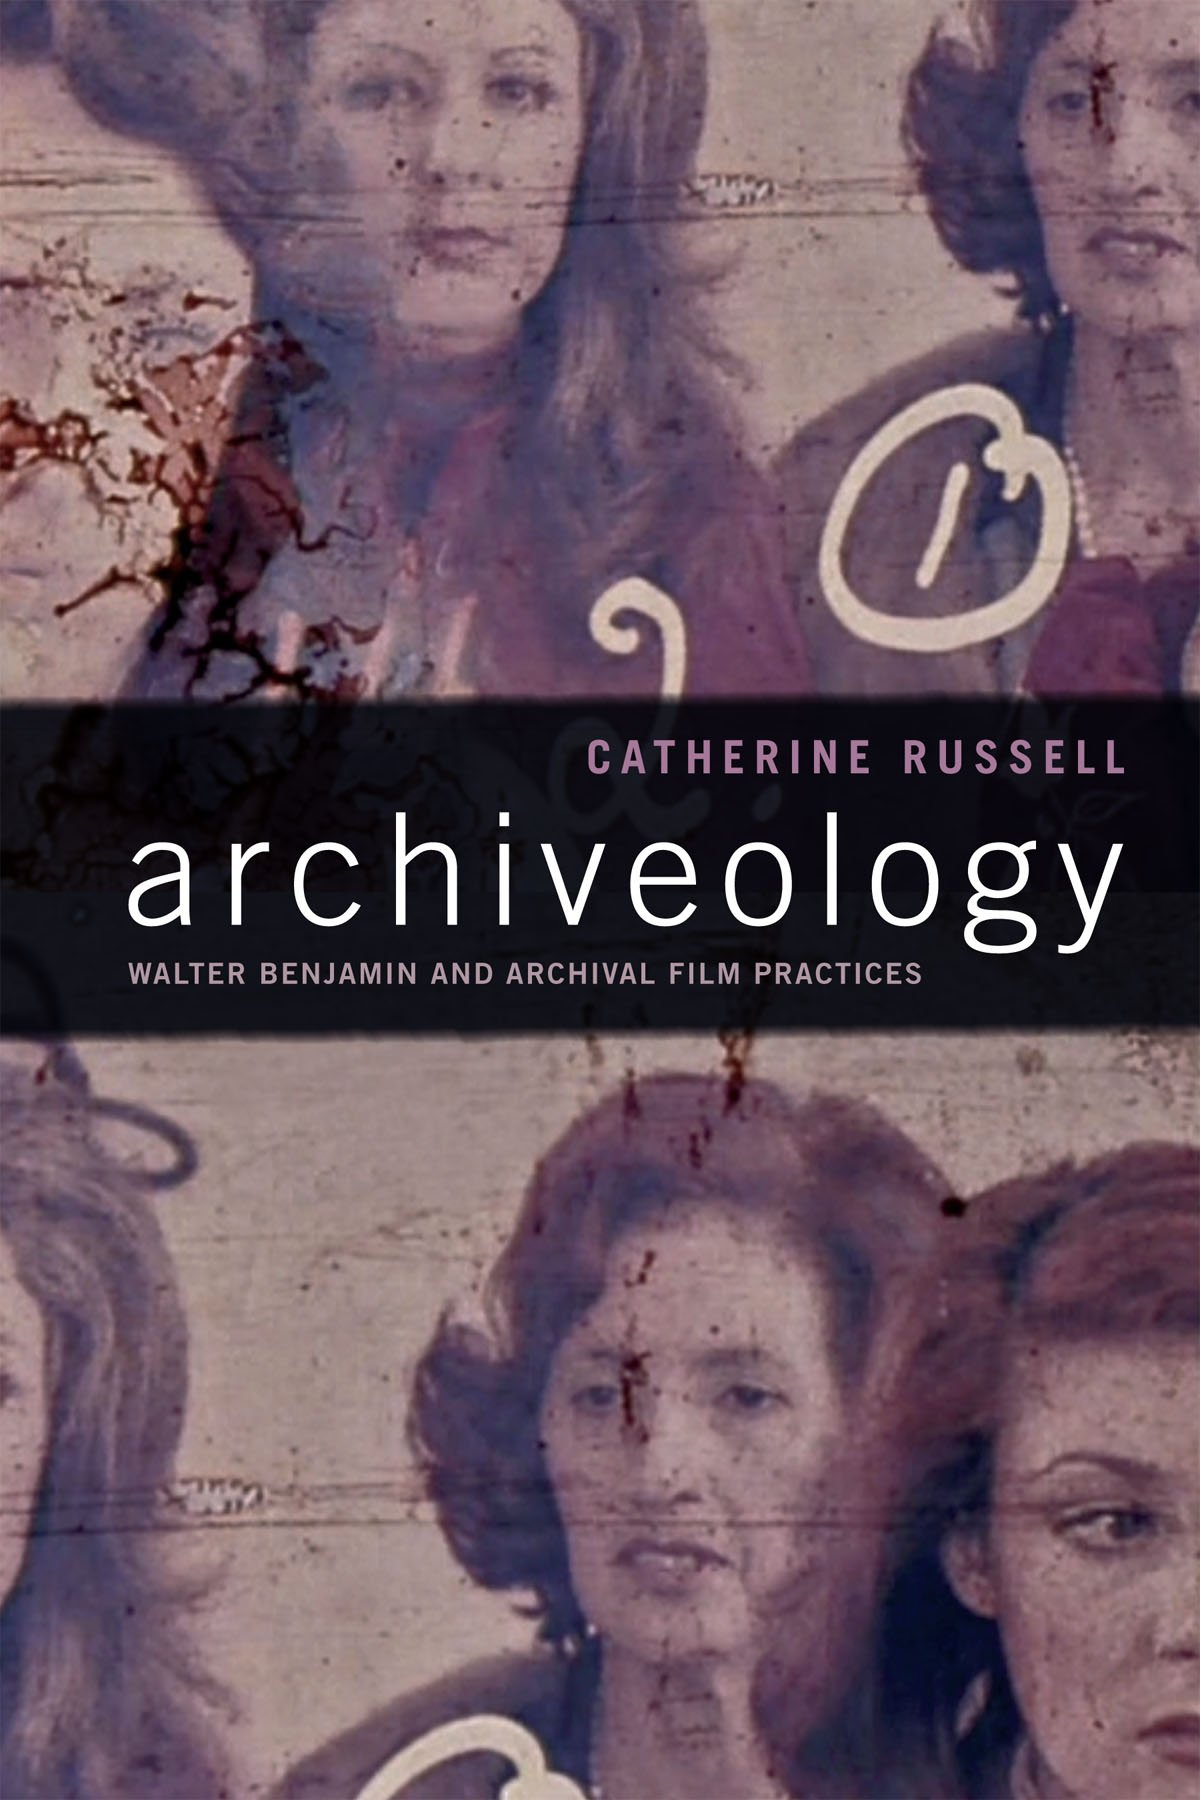 Archiveology: Walter Benjamin and Archival Film Practices (a Camera Obscura book)